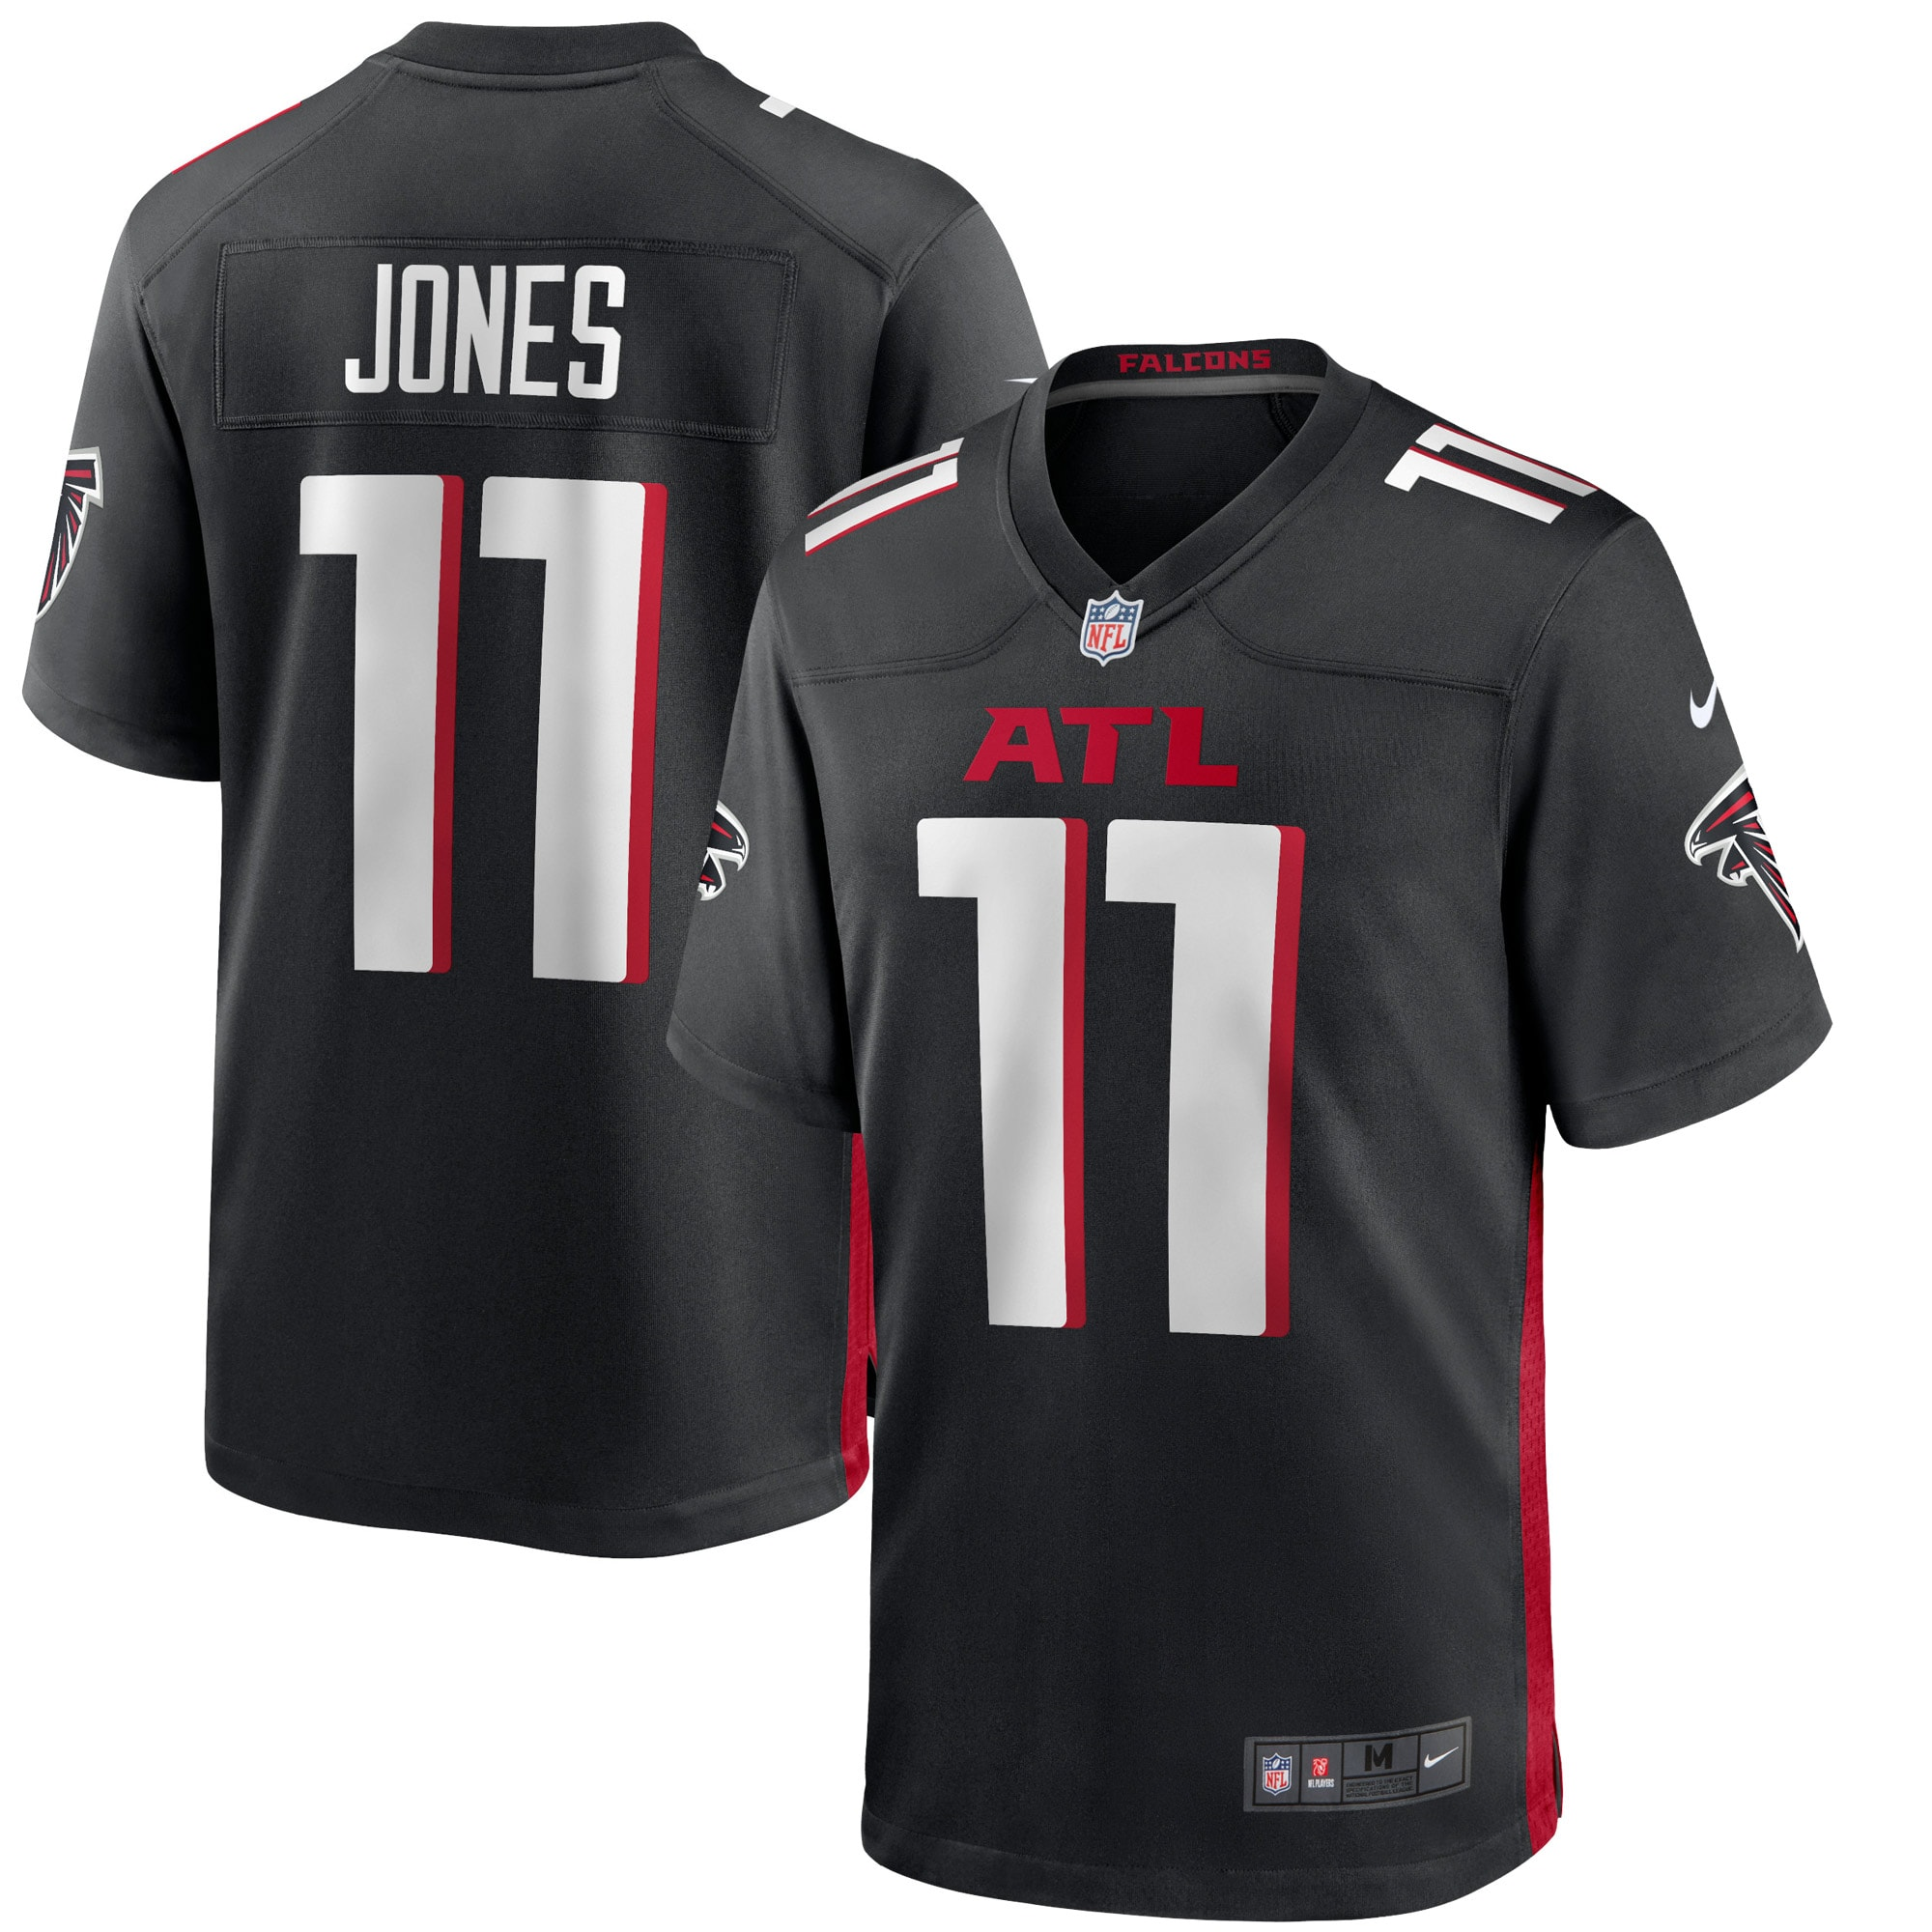 Julio Jones Atlanta Falcons Nike Game Jersey - Black